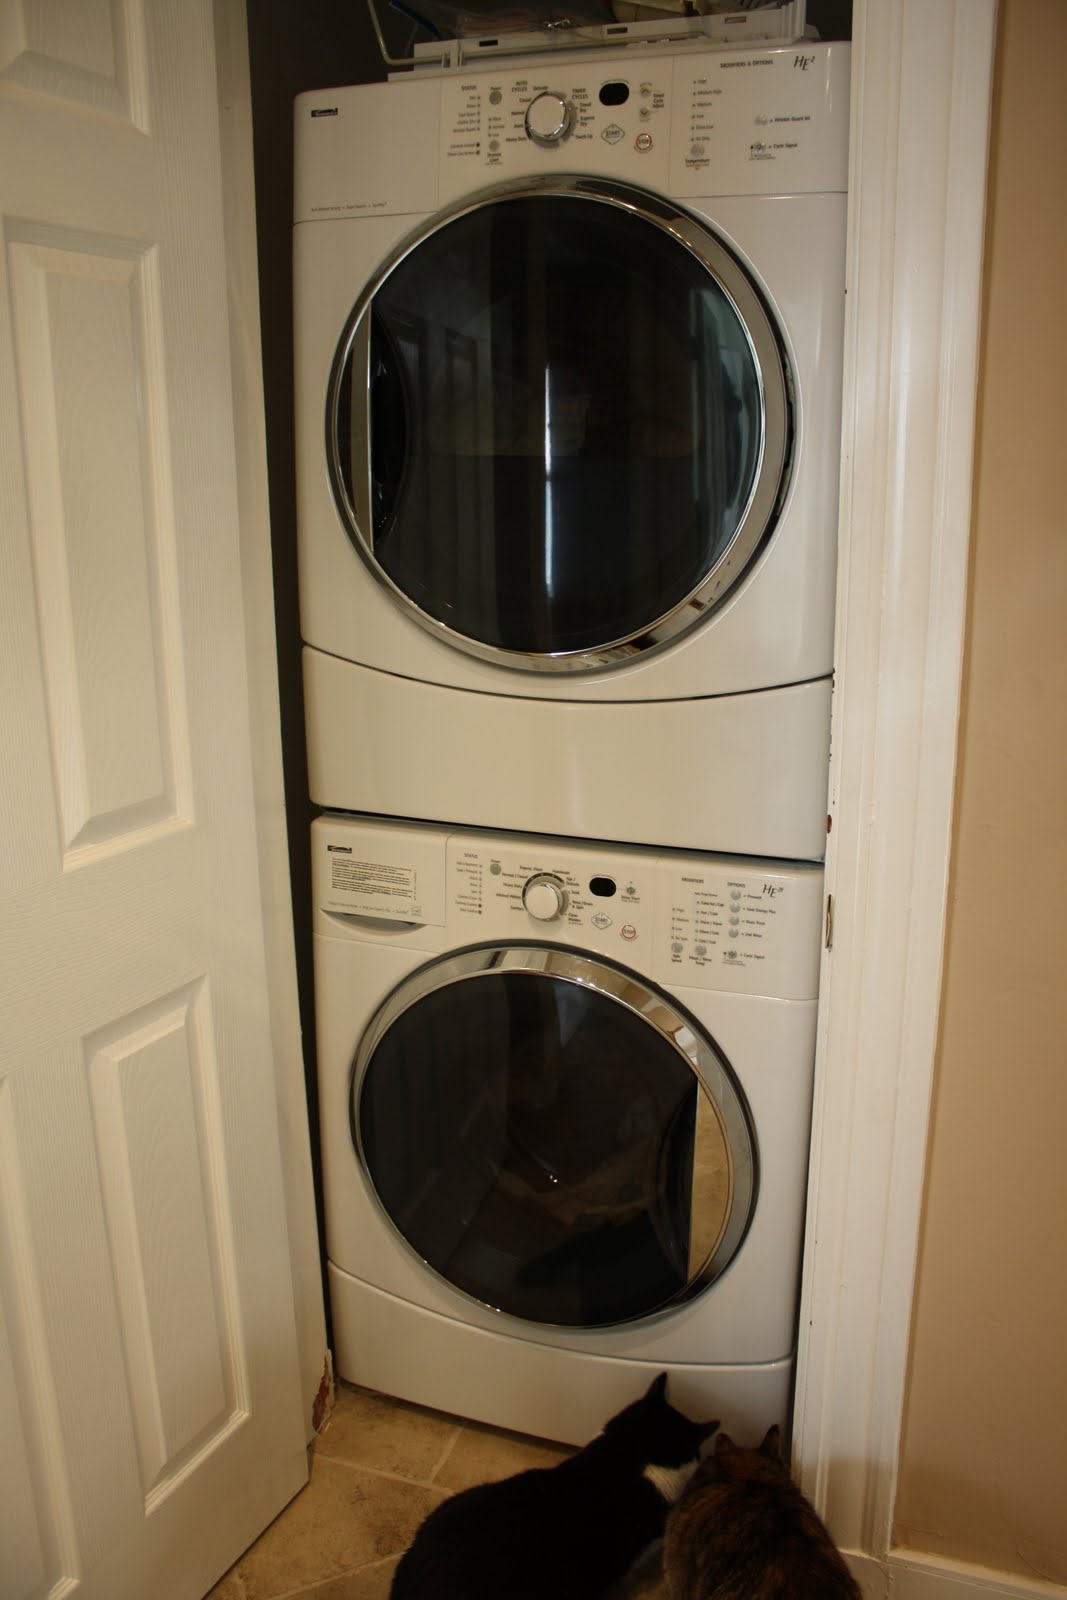 Washers dryers at lowes stackable combo front load 2015 personal blog - Apartment size stackable washer and dryer ...